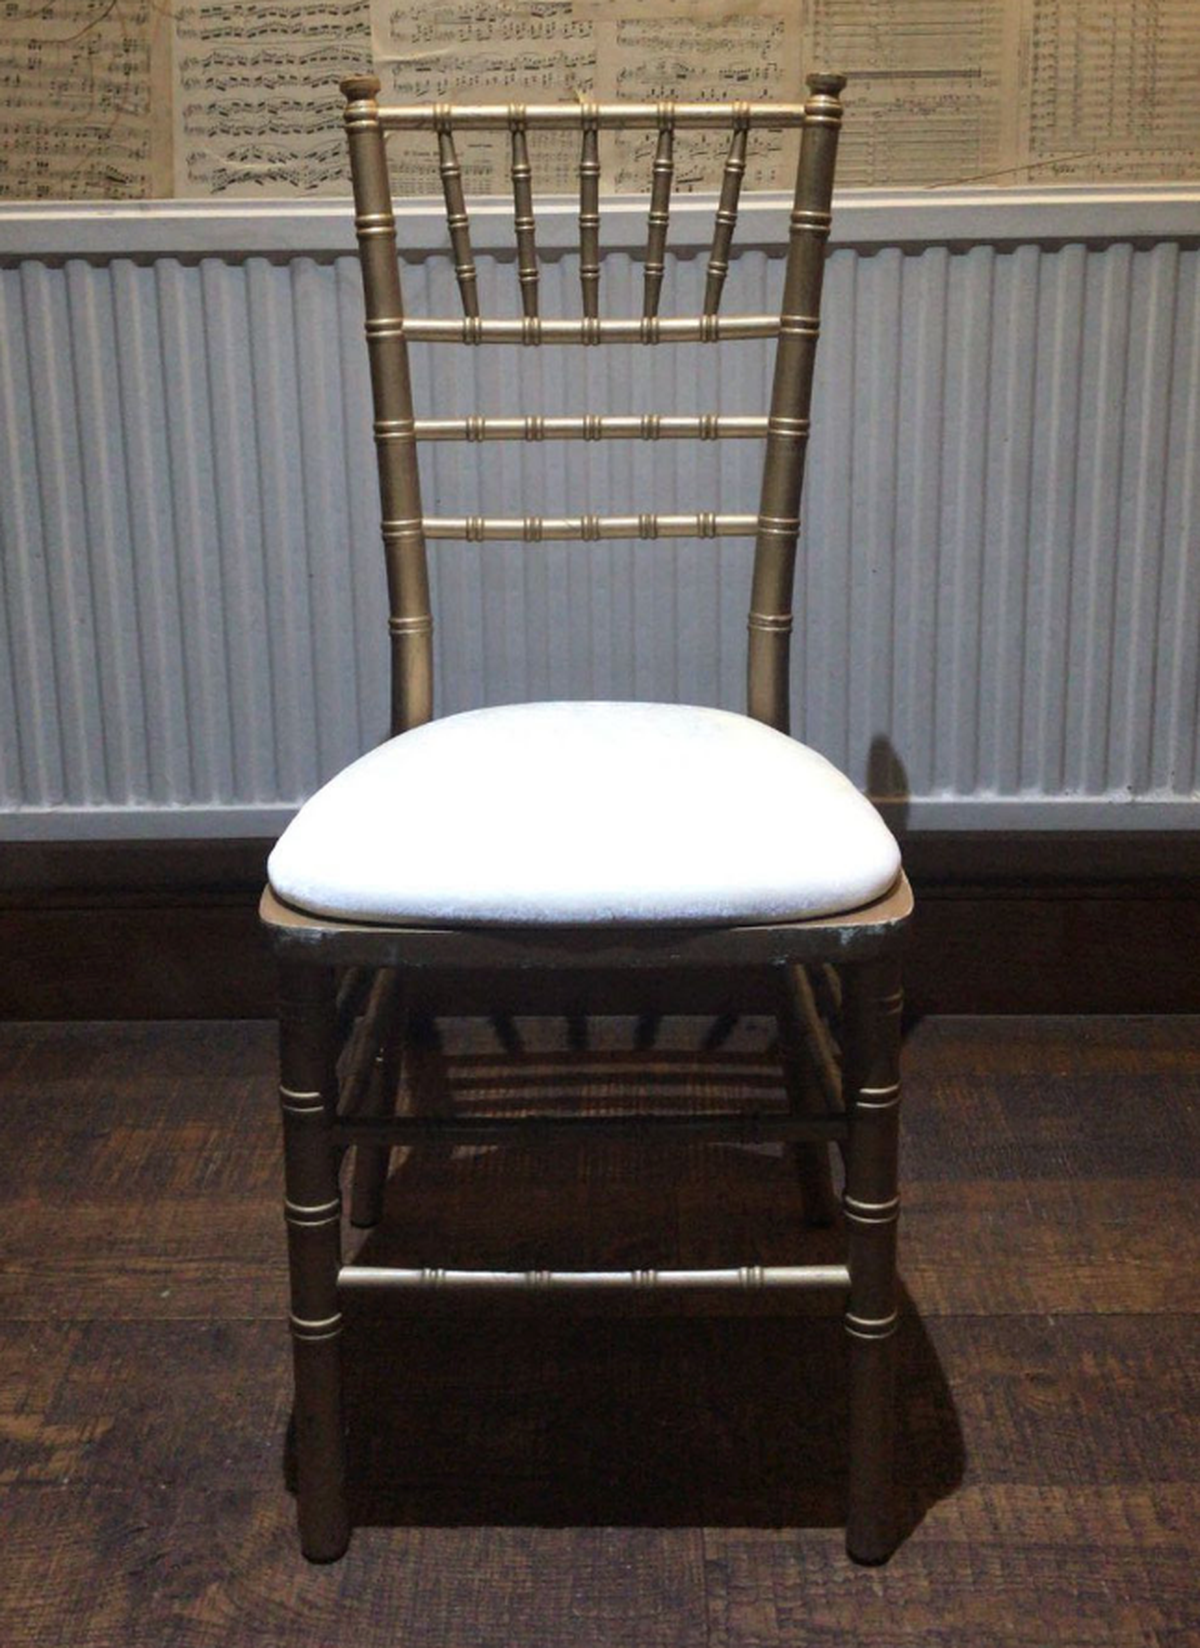 secondhand chairs and tables chivari and camelot banqueting chairs